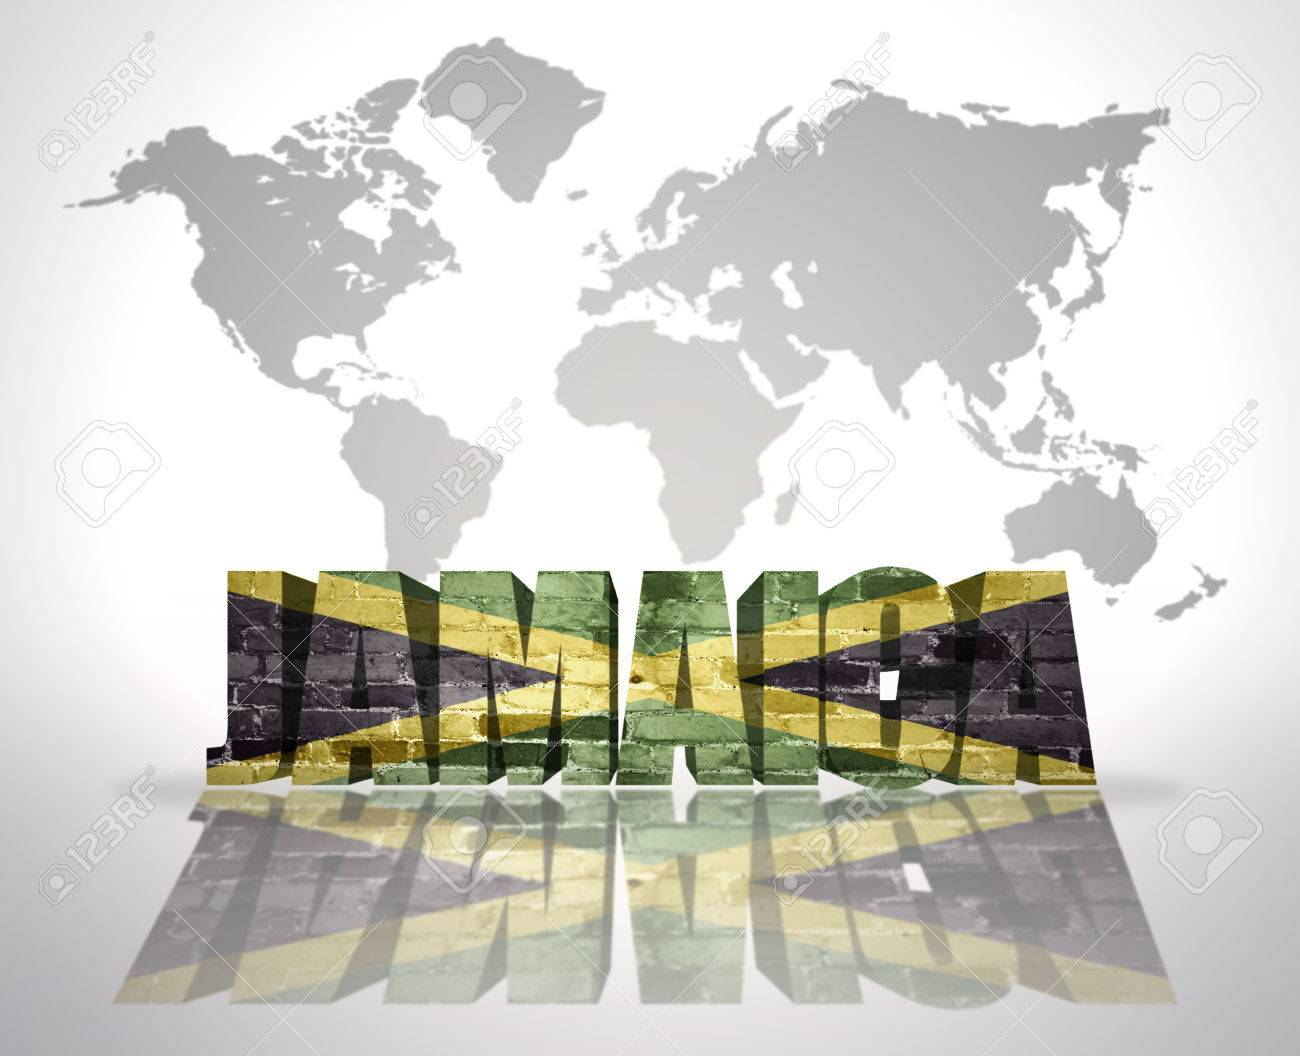 Jamaica On Map Of World.Word Jamaica With Jamaican Flag On A World Map Background Stock